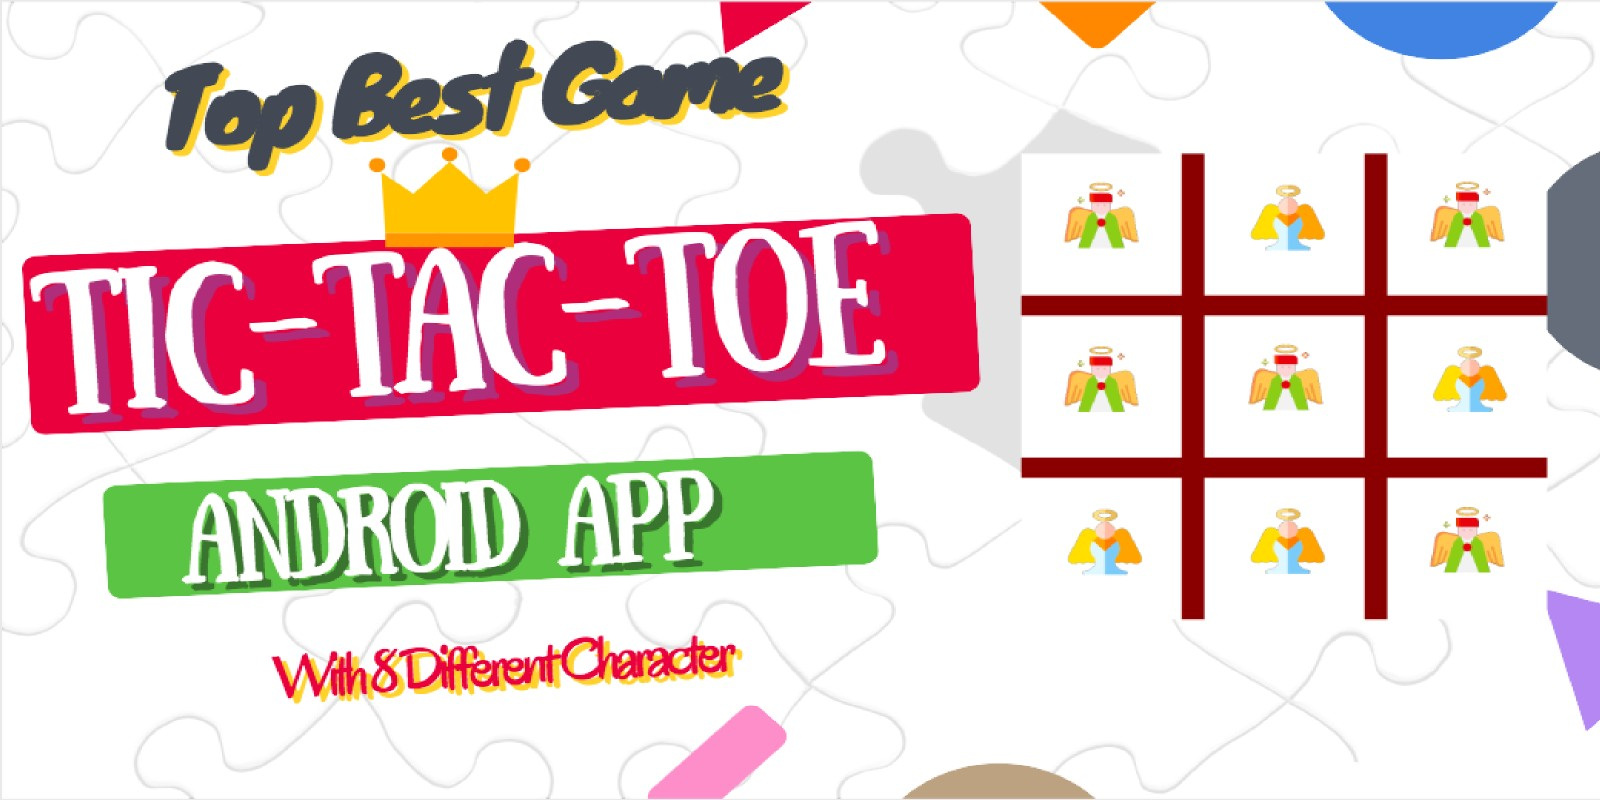 Tic Tac Toe King Game App